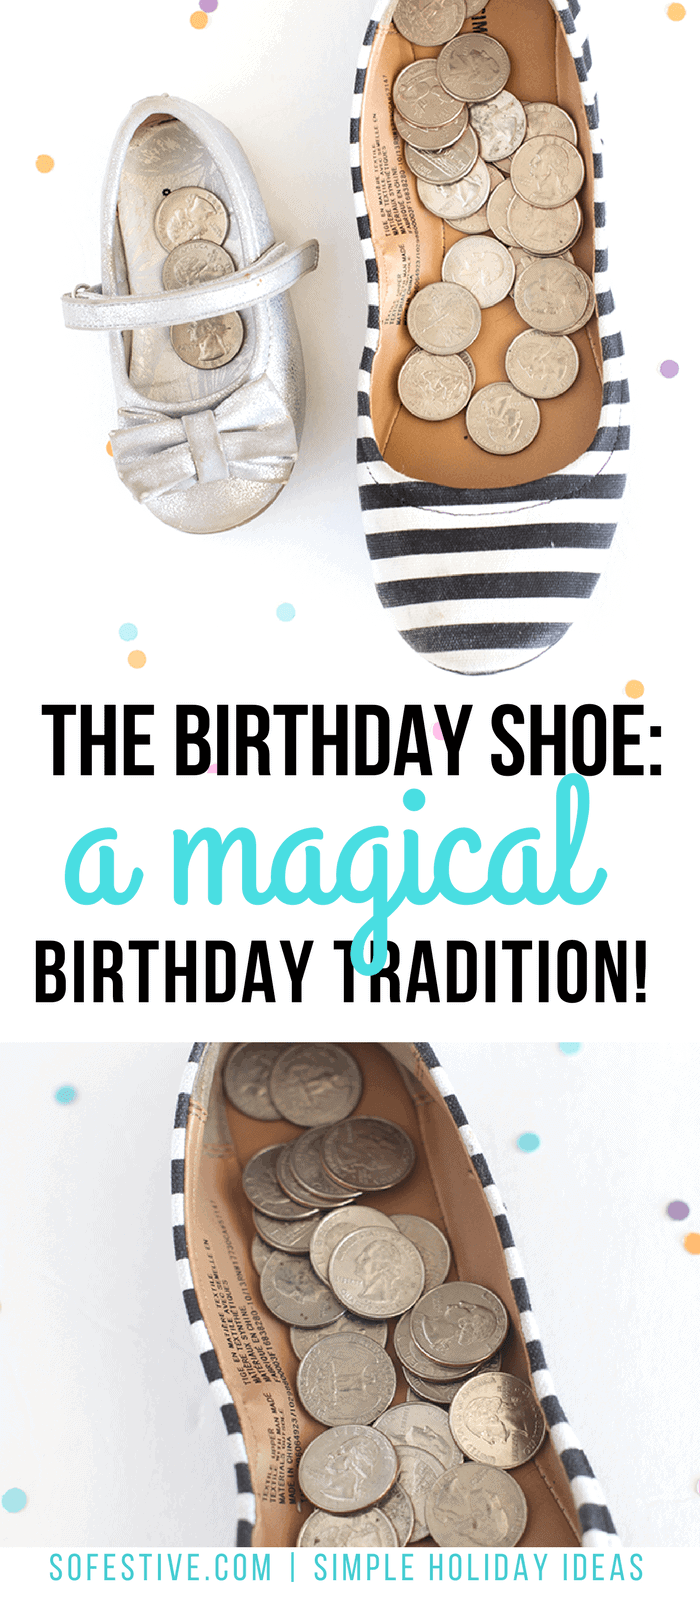 Birthday-tradition-idea